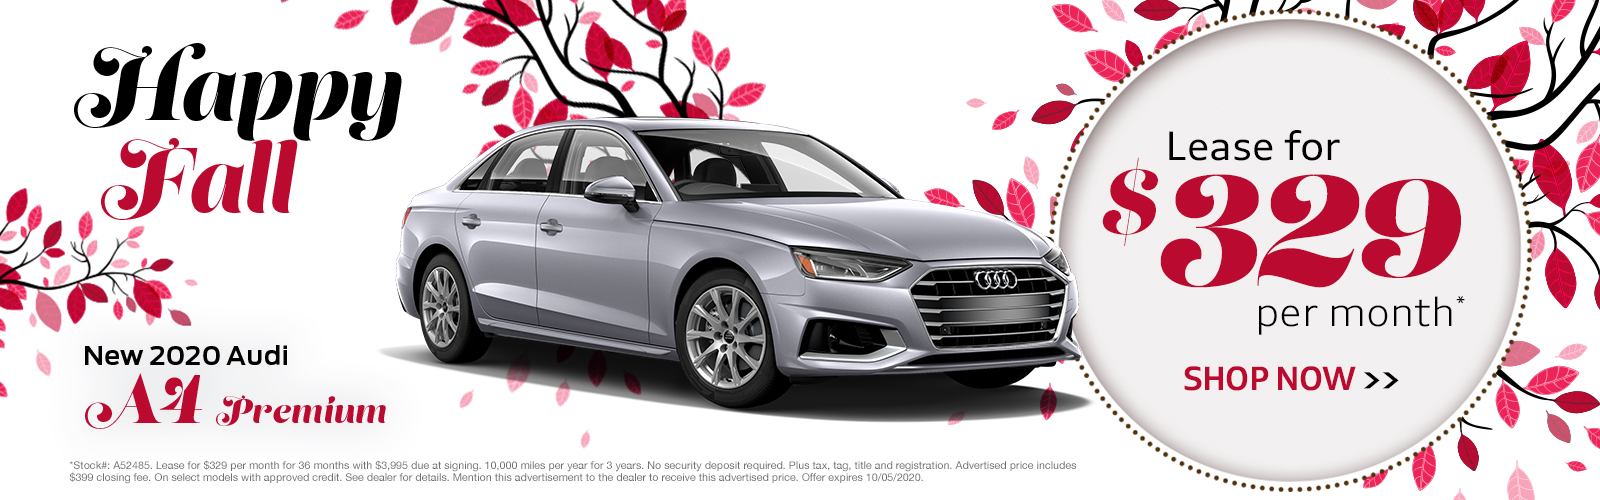 New 2020 Audi A4 Greenville SC